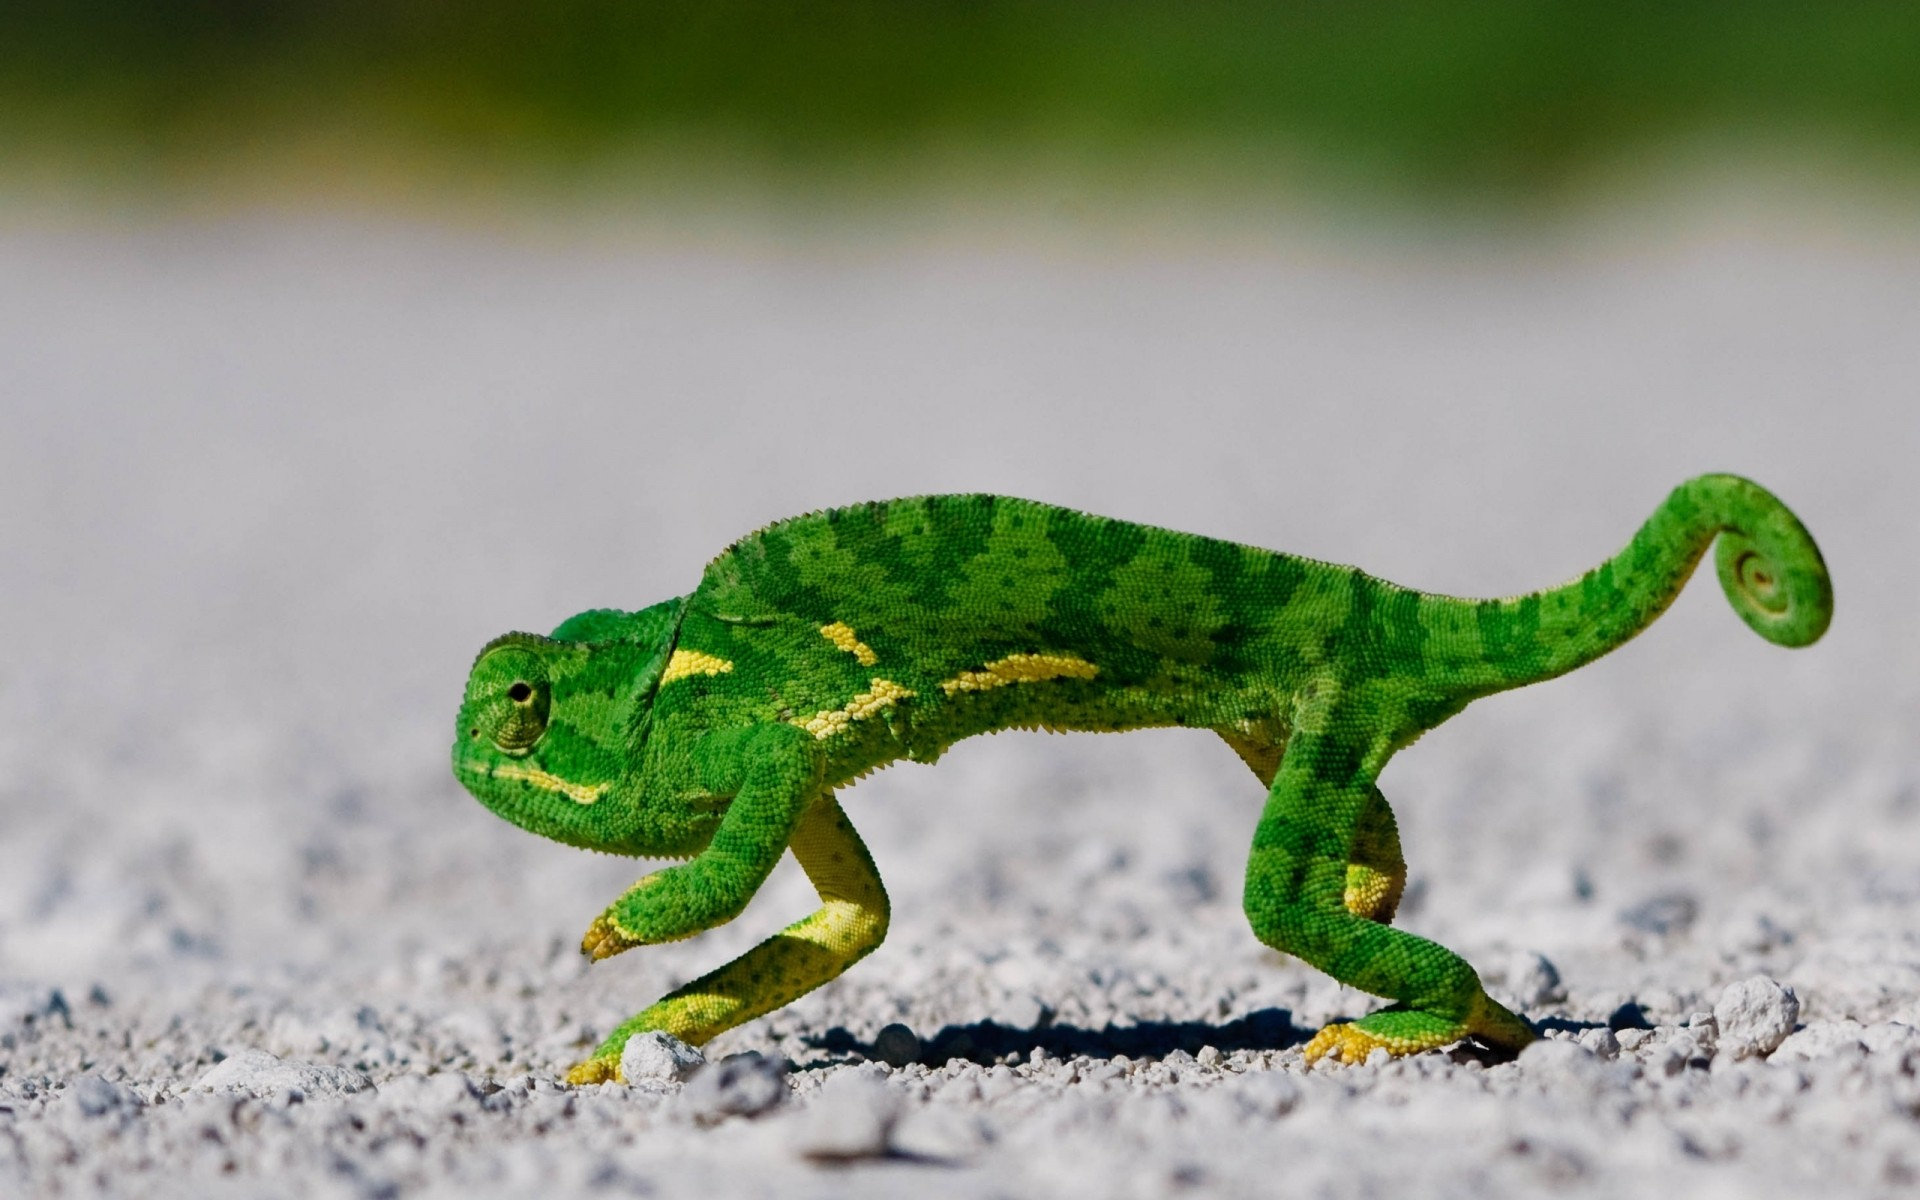 reptiles and frogs reptile lizard nature wildlife animal amphibian frog leaf chameleon environment outdoors gecko color one